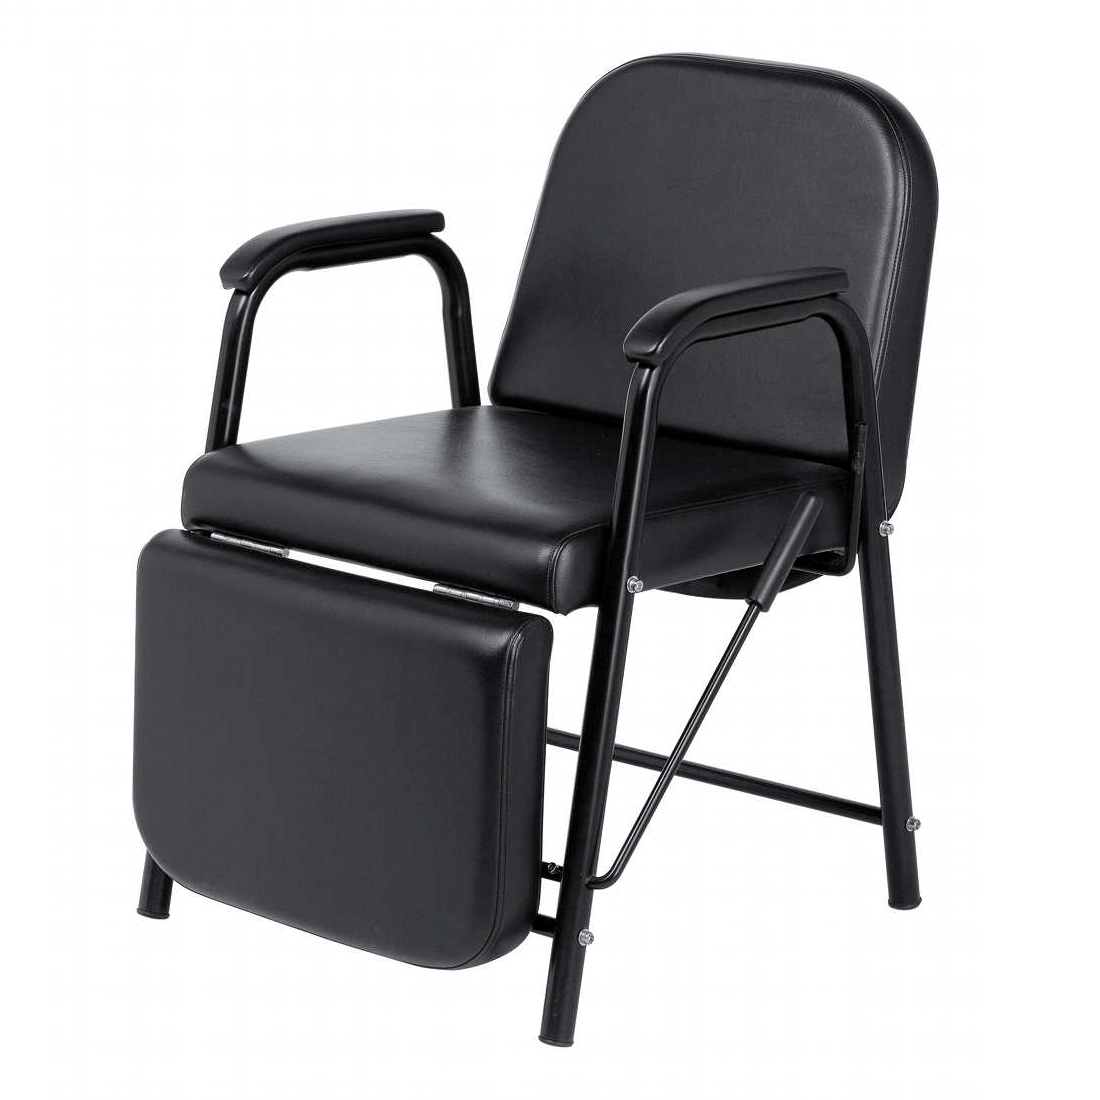 Savvy Shampoo Chair with Legrest